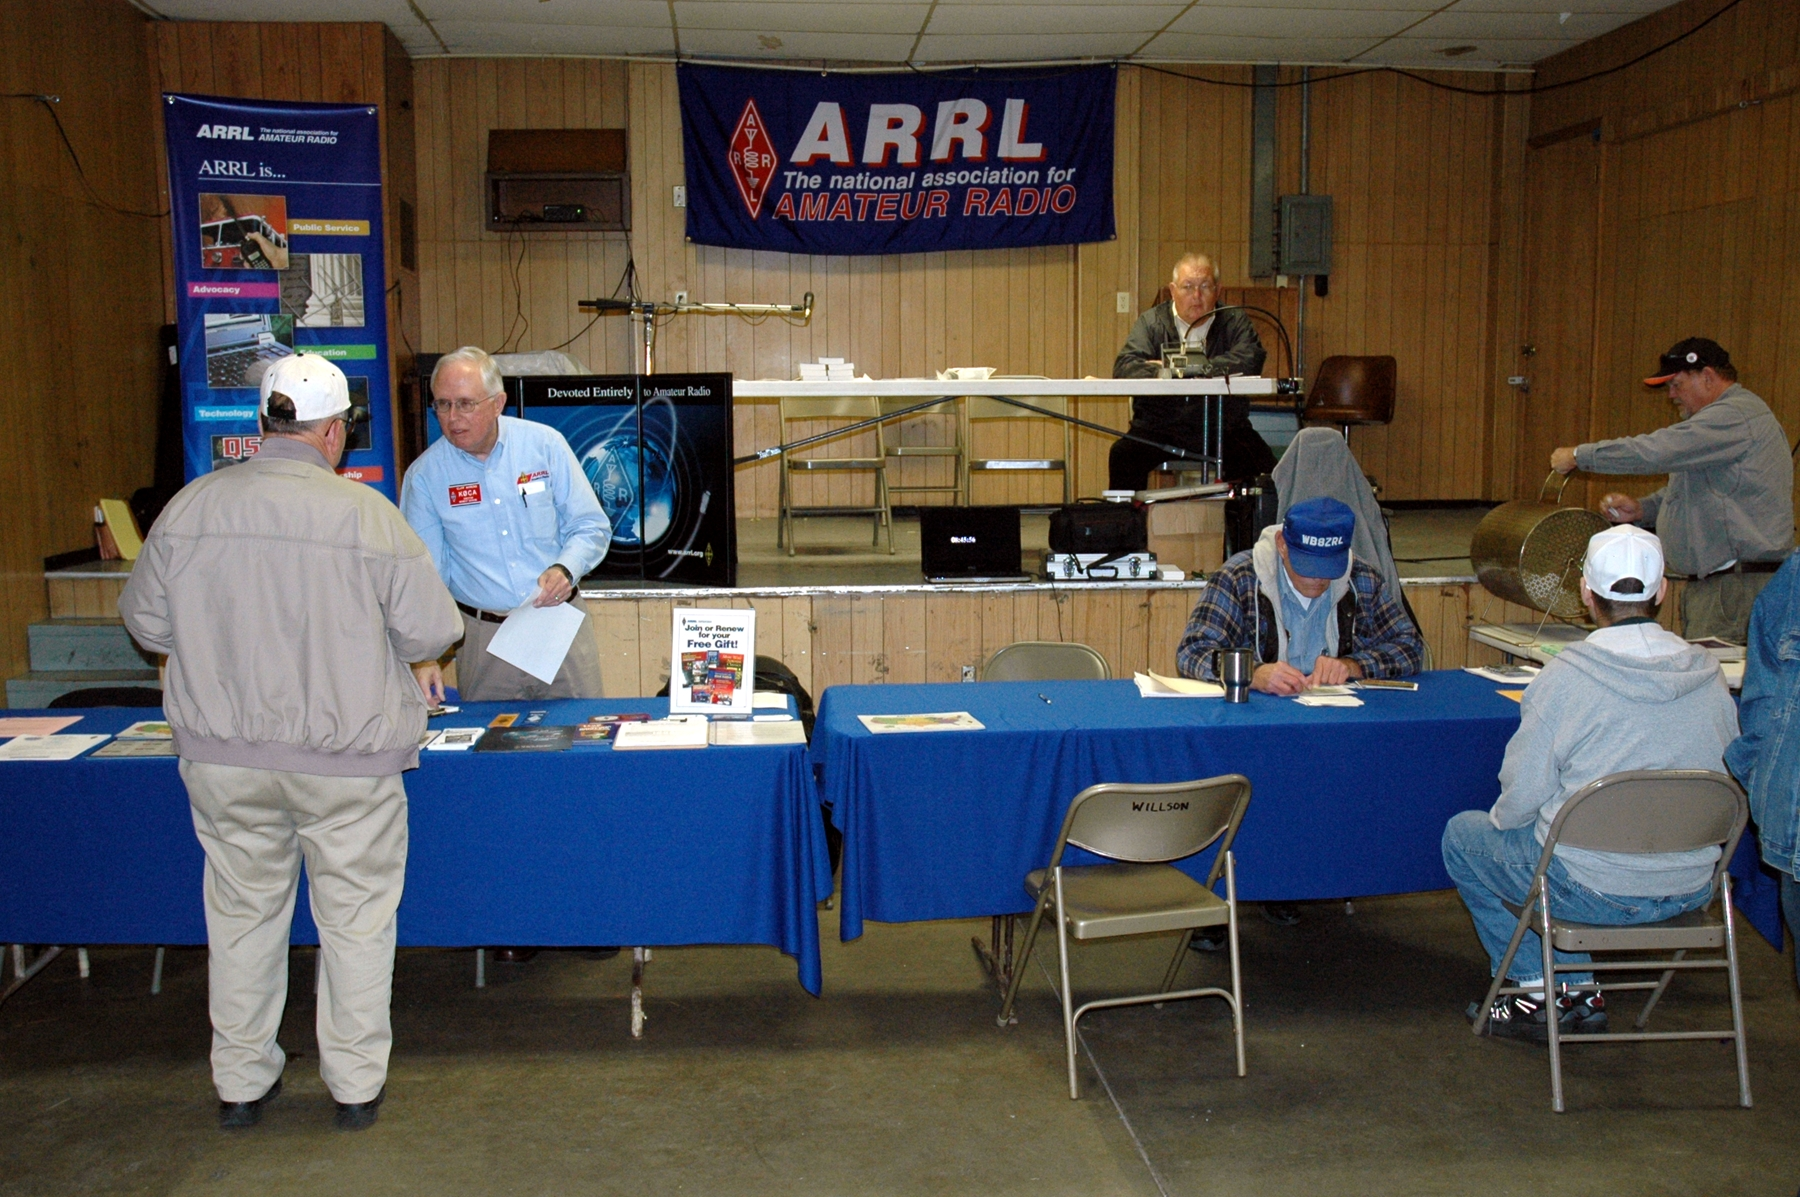 Pictures from 2010 Southeast Iowa Hamfest and ARRL Iowa